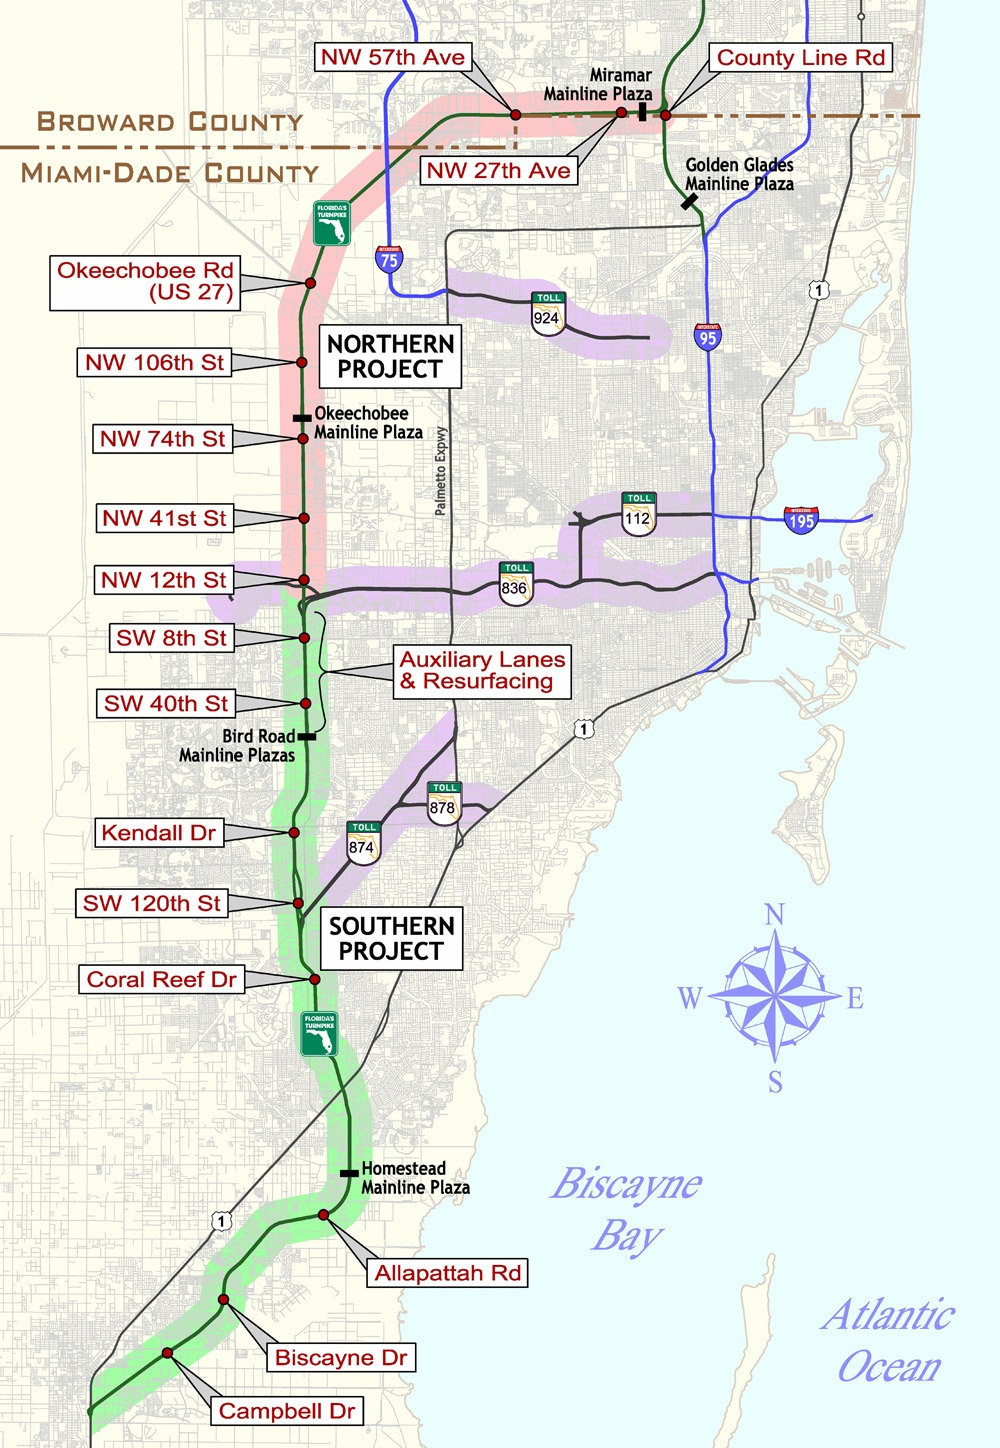 Florida Keys & Key West Travel Information - Detailed Map Of Florida Keys